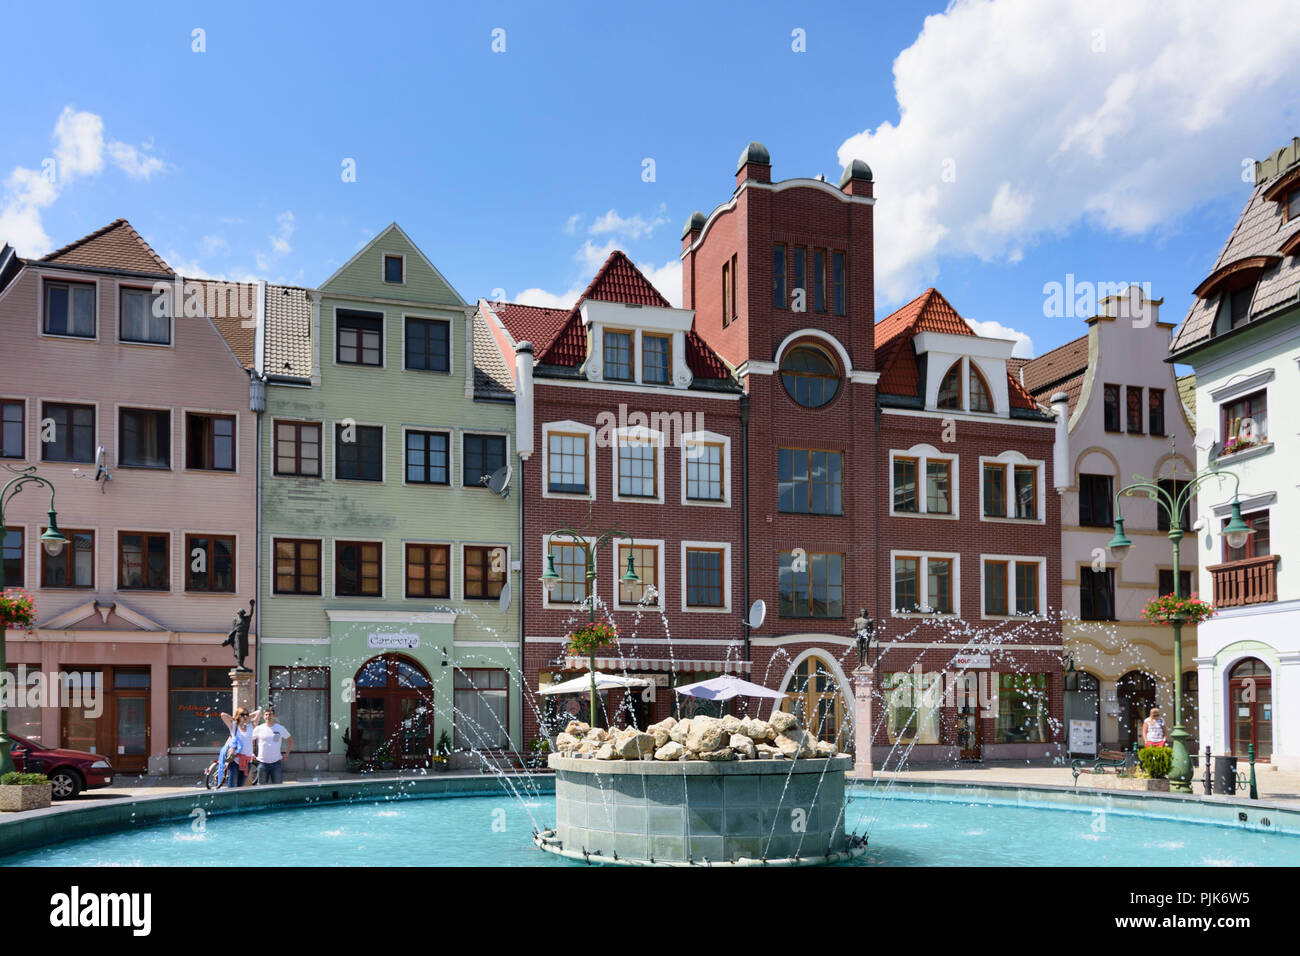 Komarno, Europe Square in the center purports to represent buildings from all parts of Europe in Slovakia, - Stock Image